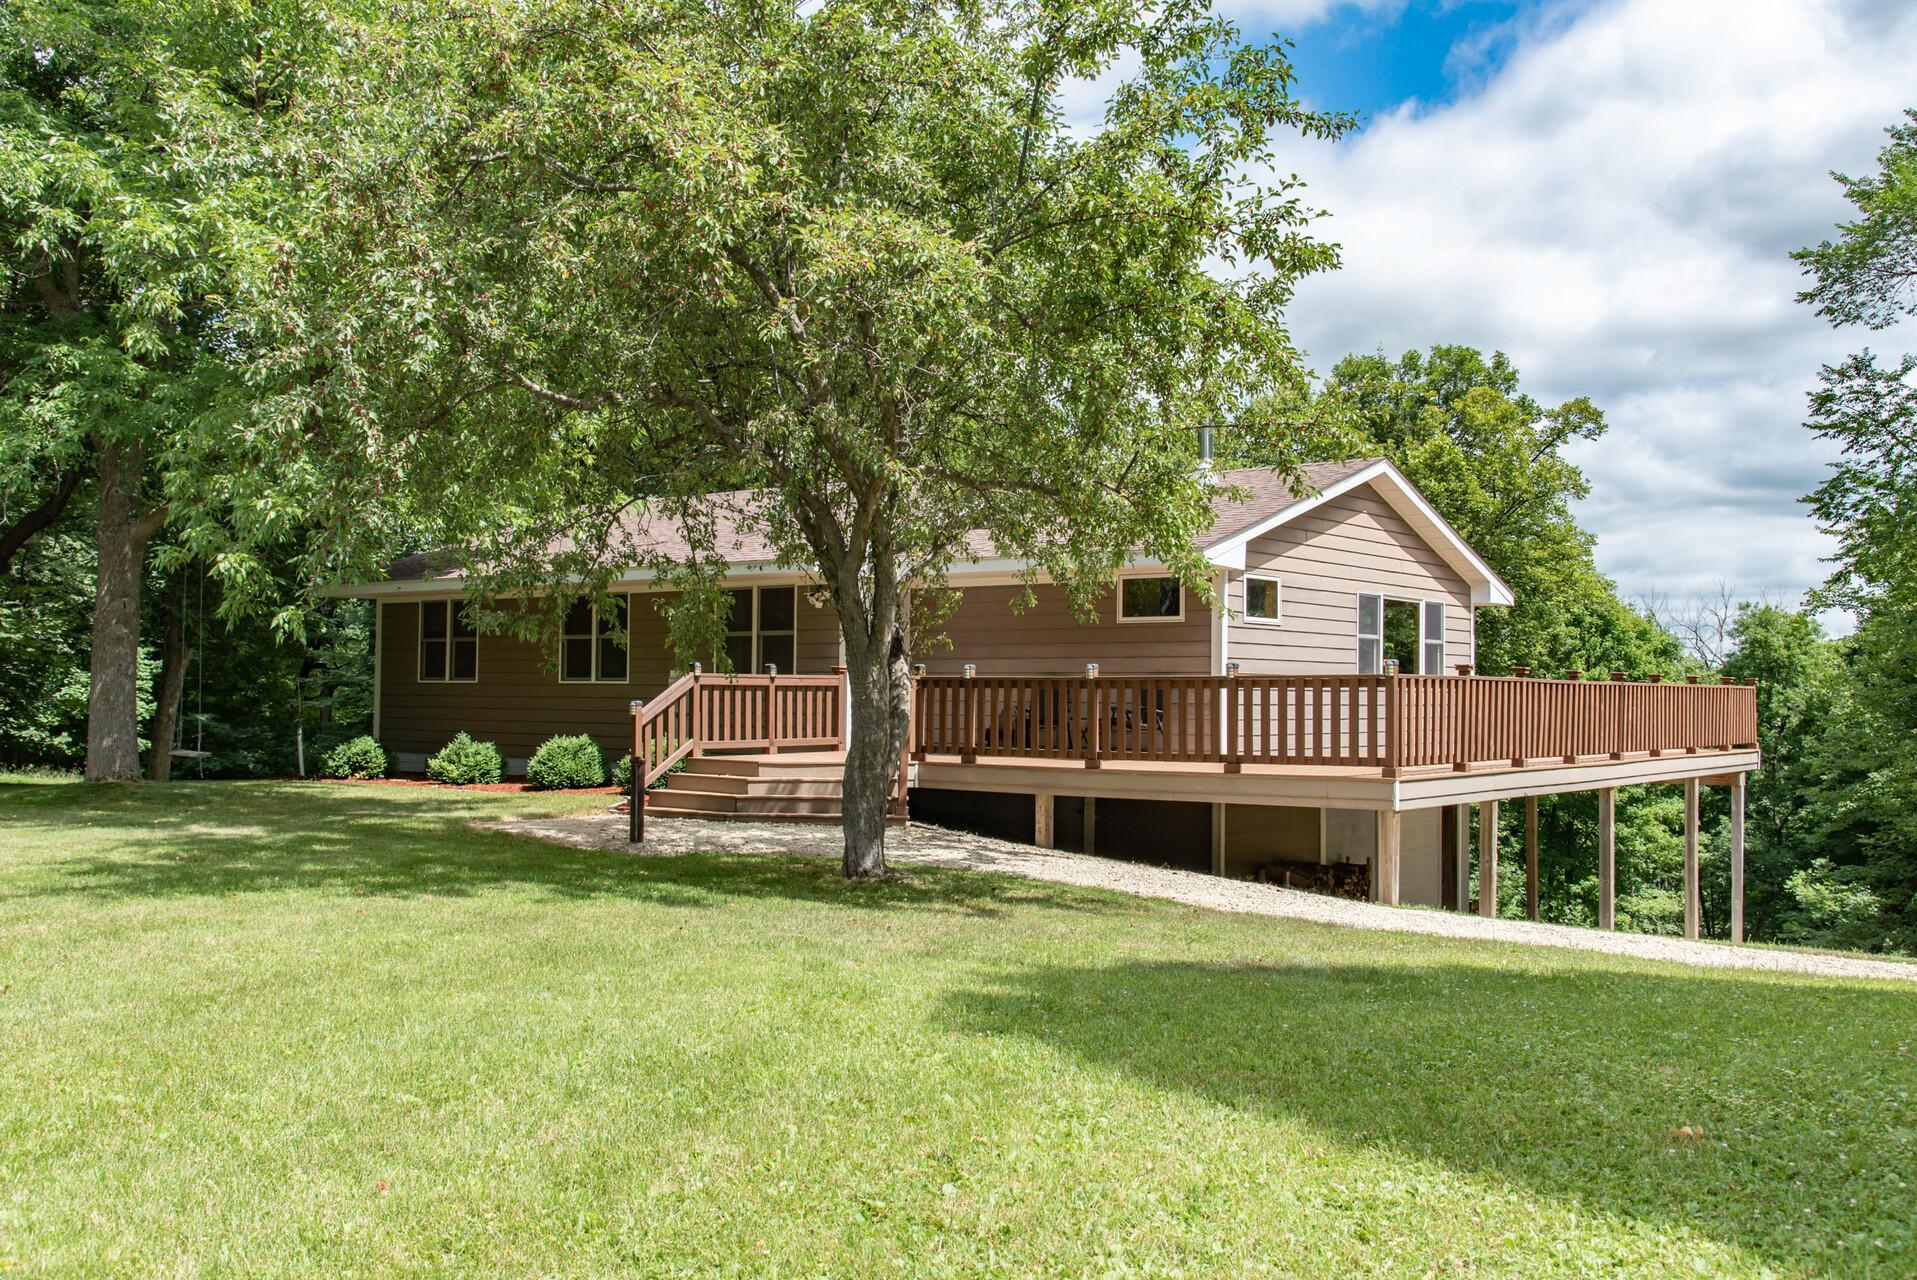 14845 Kendall Court Property Photo - Nerstrand, MN real estate listing